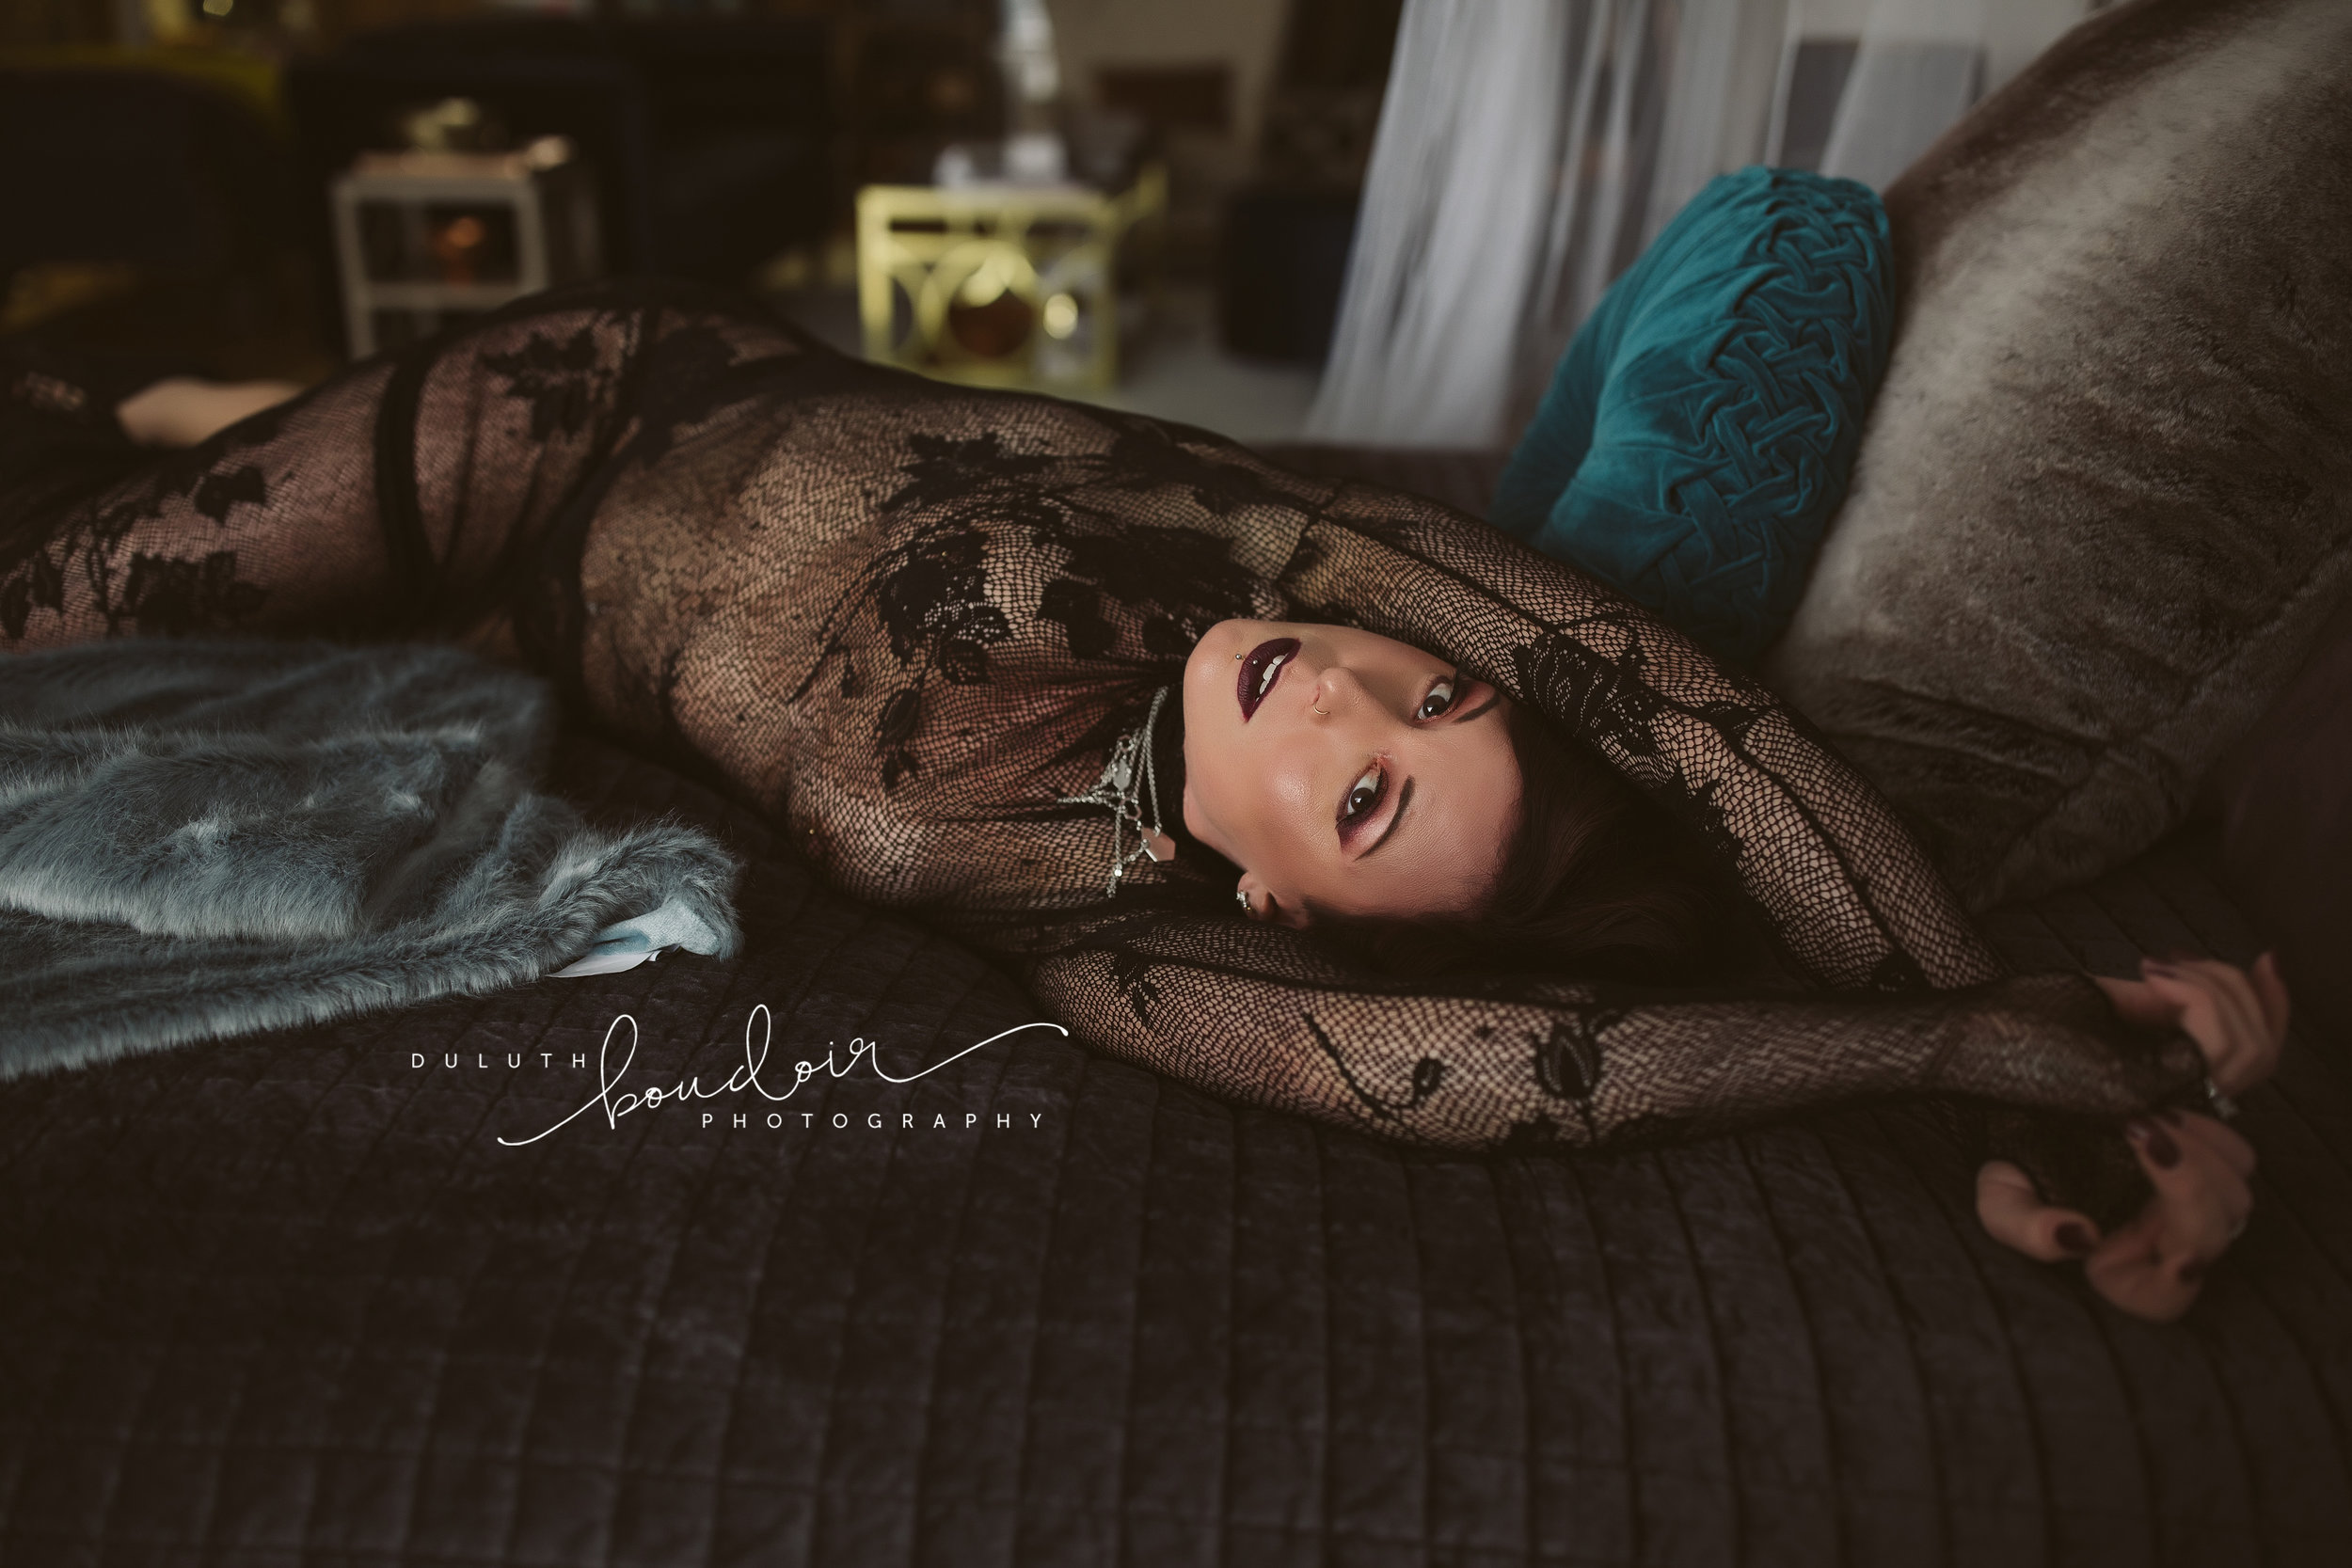 duluth_boudoir_photography_session_jen-066.jpg